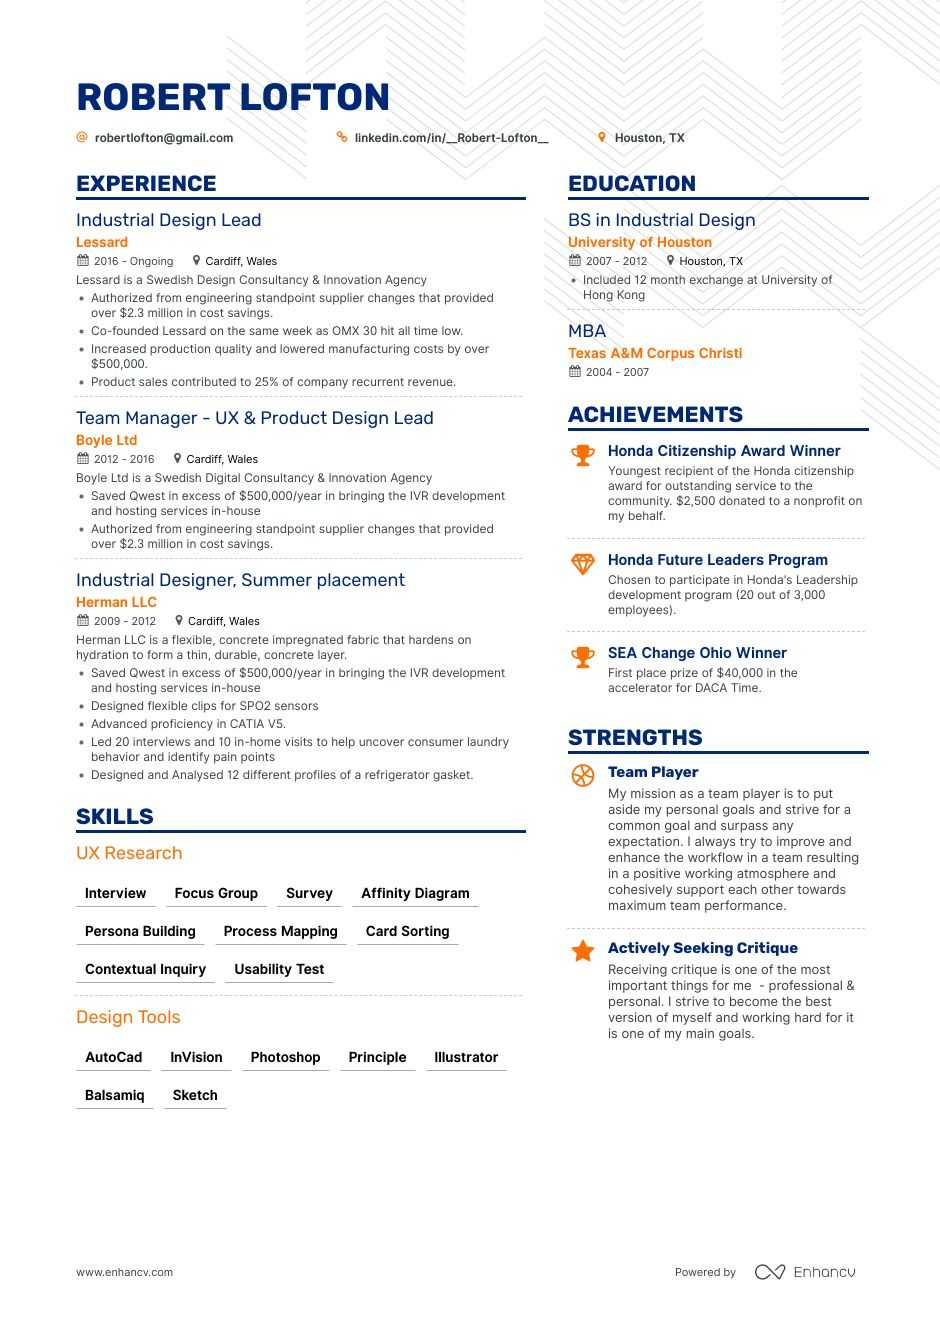 Industrial Designer Resume 8 Step Ultimate Guide For 2020